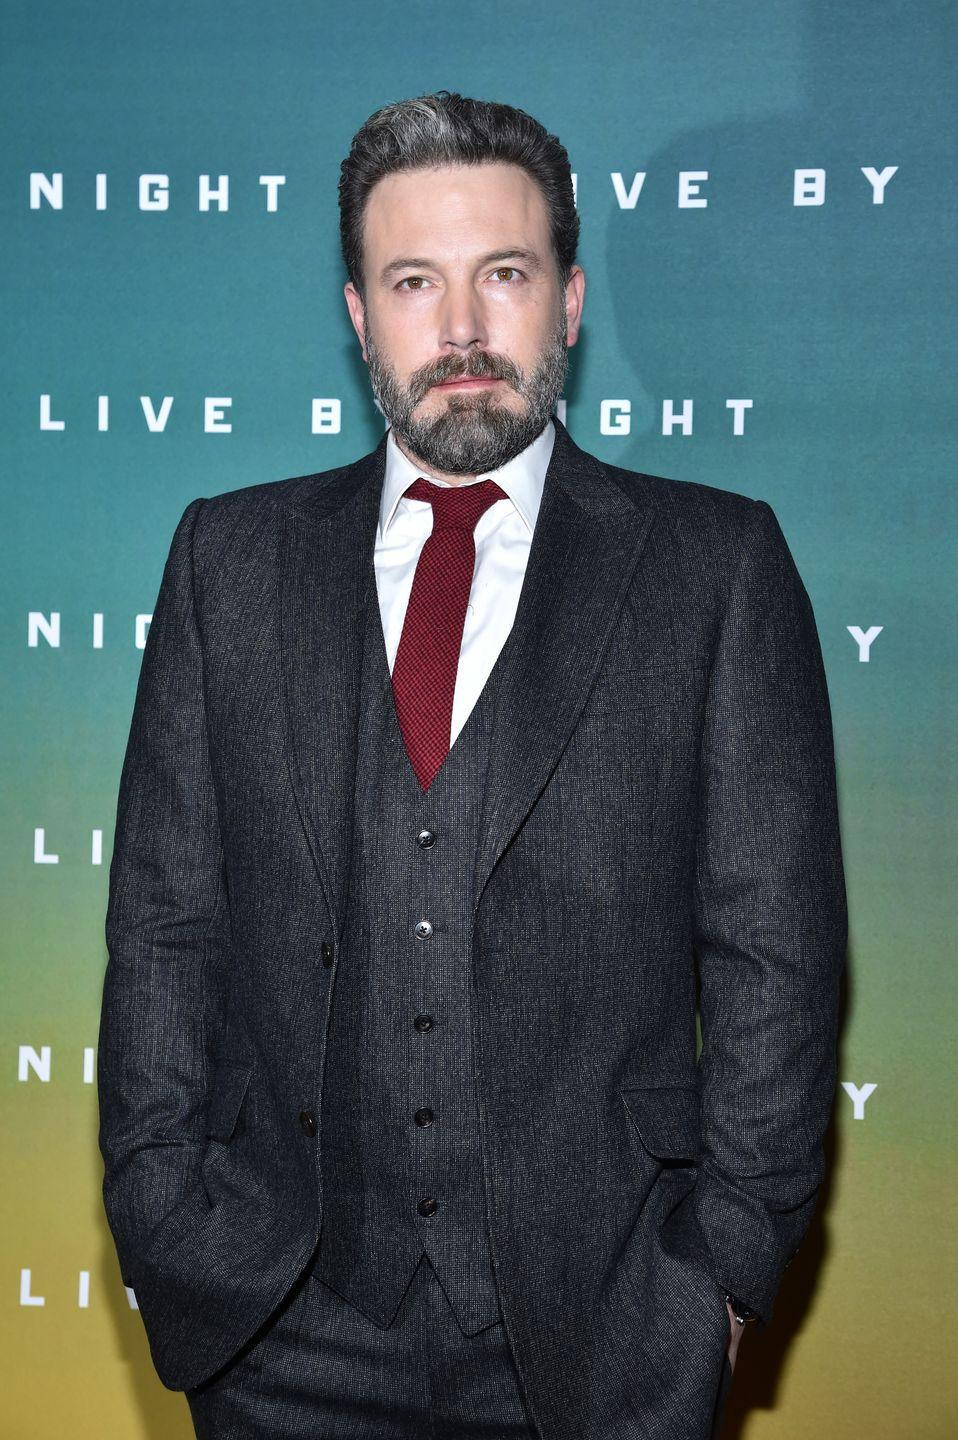 "<p>In a TimesTalk interview Affleck <a href=""http://www.harpersbazaar.com/celebrity/latest/news/a19408/ben-affleck-talks-gigli-jennifer-lopez/"" rel=""nofollow noopener"" target=""_blank"" data-ylk=""slk:revealed"" class=""link rapid-noclick-resp"">revealed</a>, ""It could have been a bad movie no one cared about. Angelina Jolie had a bad movie that year and no one cared. But it was because I was dating Jennifer Lopez that made it a big f*cking deal. So not only was it just a bad movie, but 'they dated each other.'""</p>"